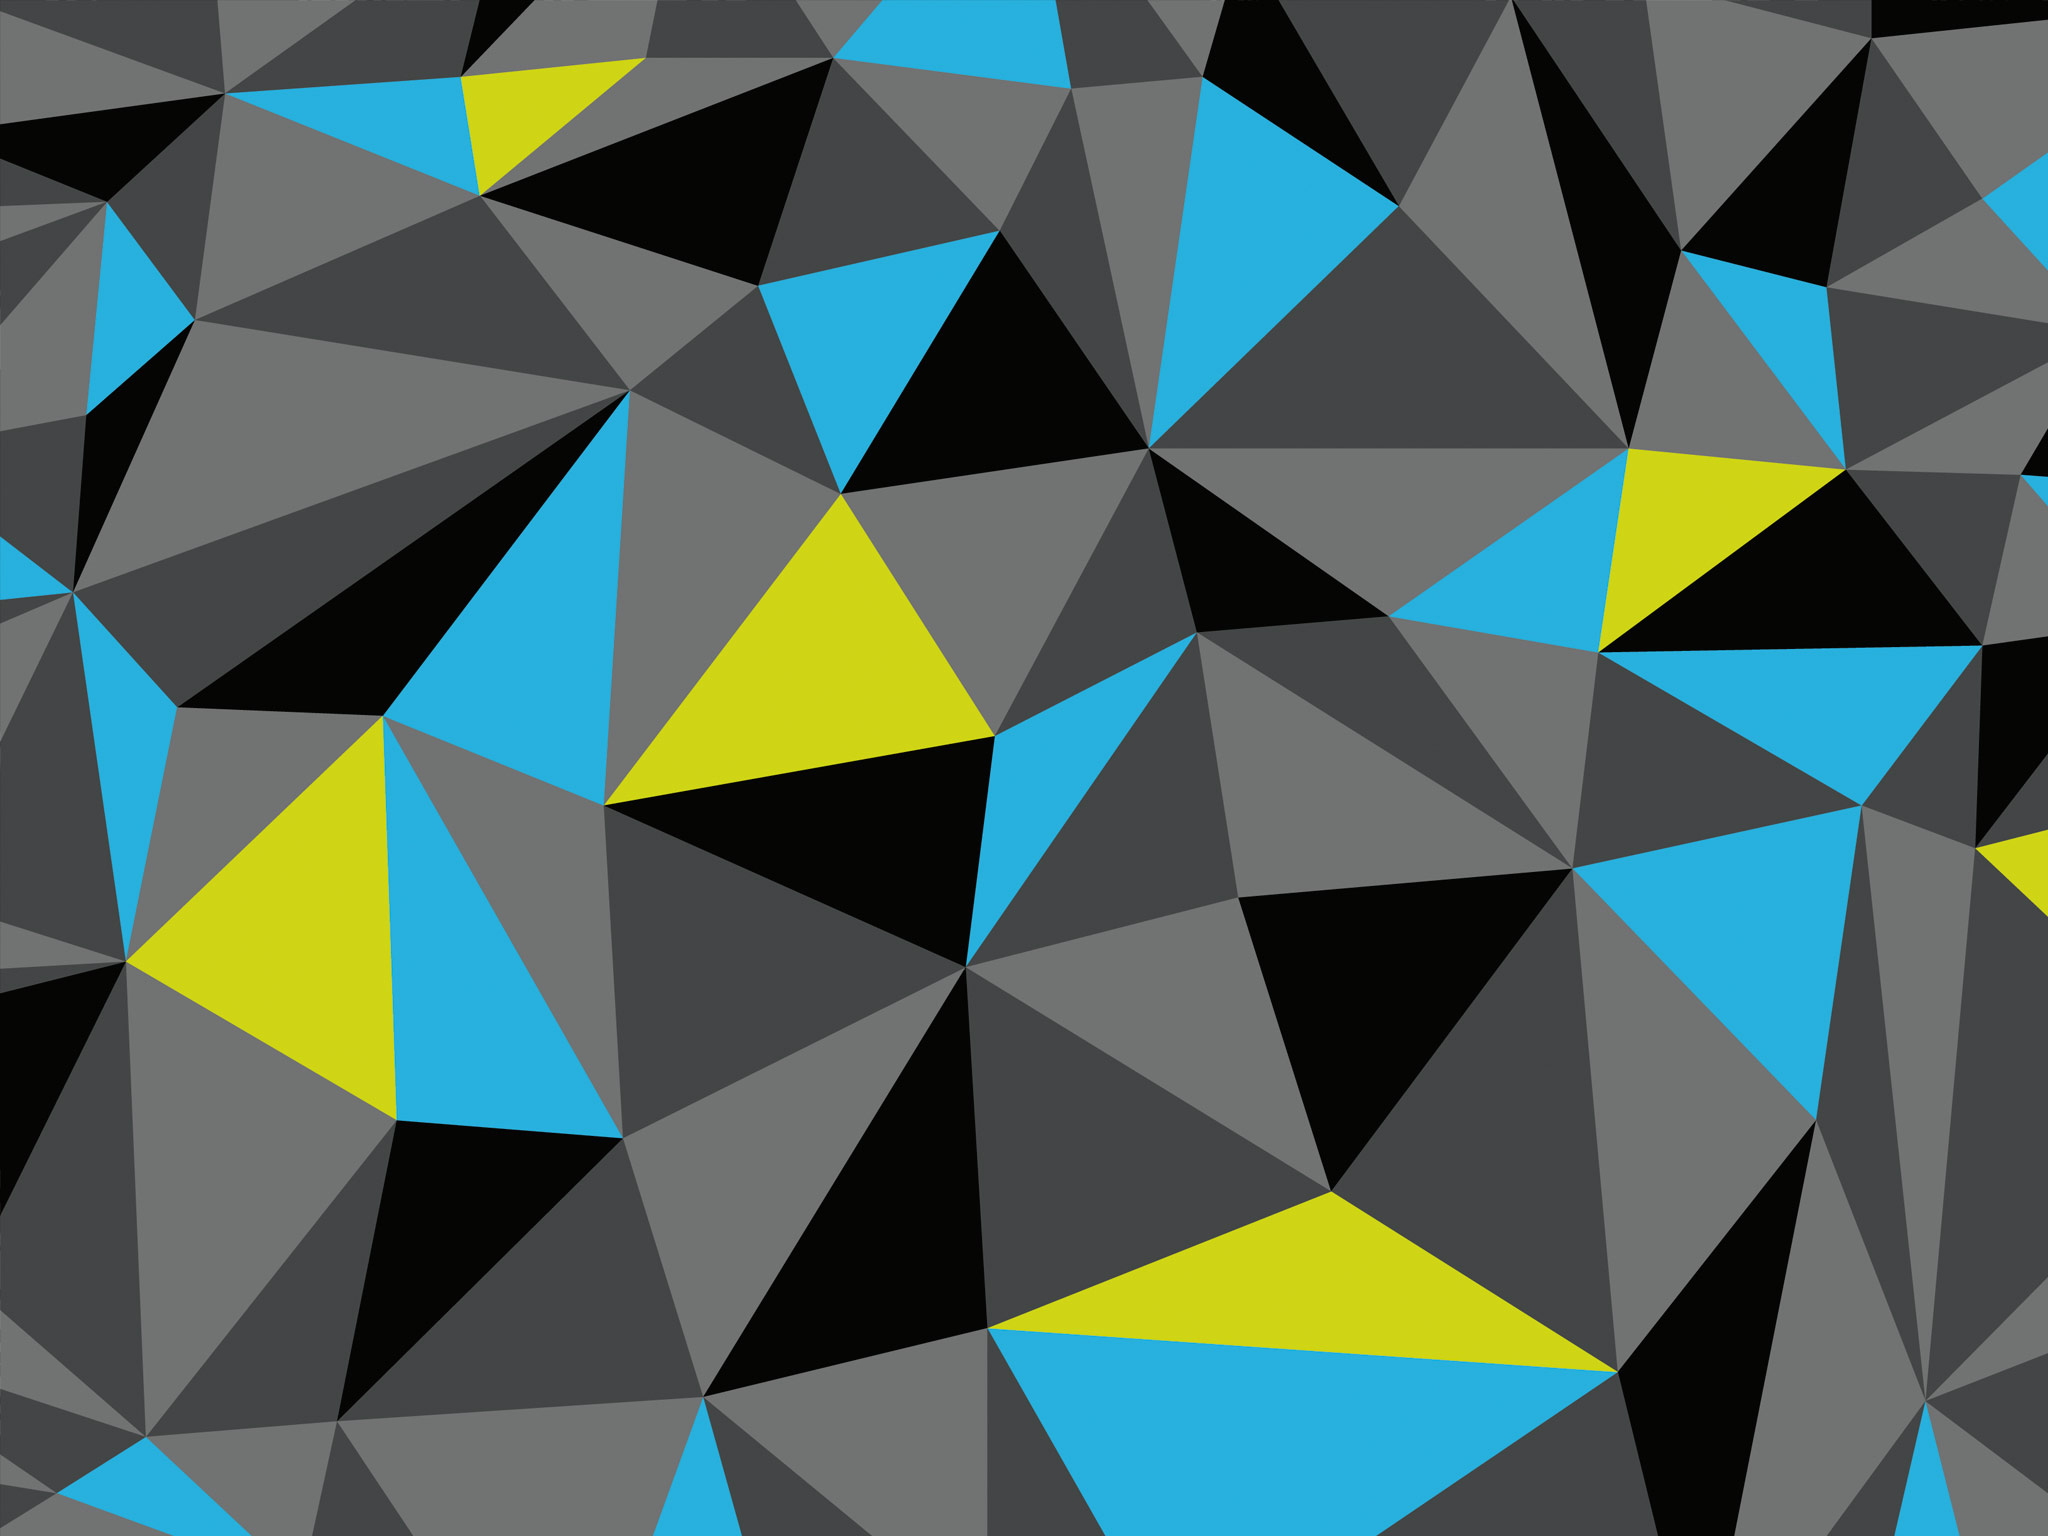 download low polygon13 [2048x1536] for your Desktop Mobile 2048x1536